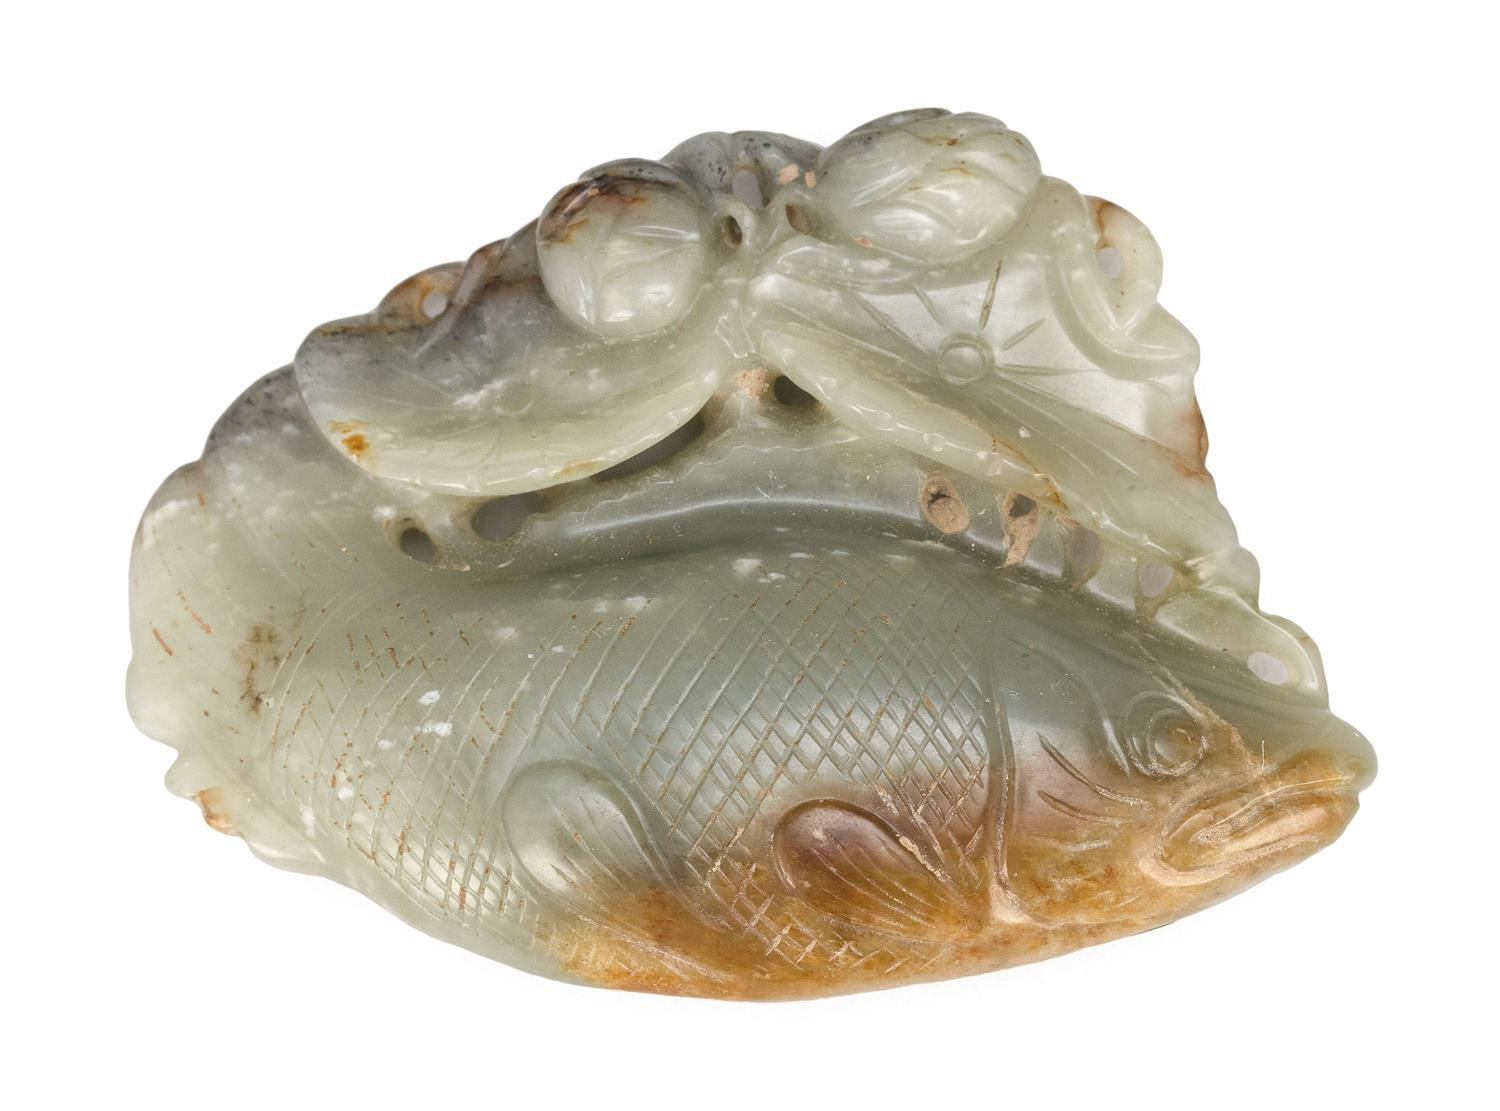 SAGE GREEN JADE CARVING OF A SOLITARY FISH Its tail is gently turned as it glides through shallow waters beneath lily pads and lotus...